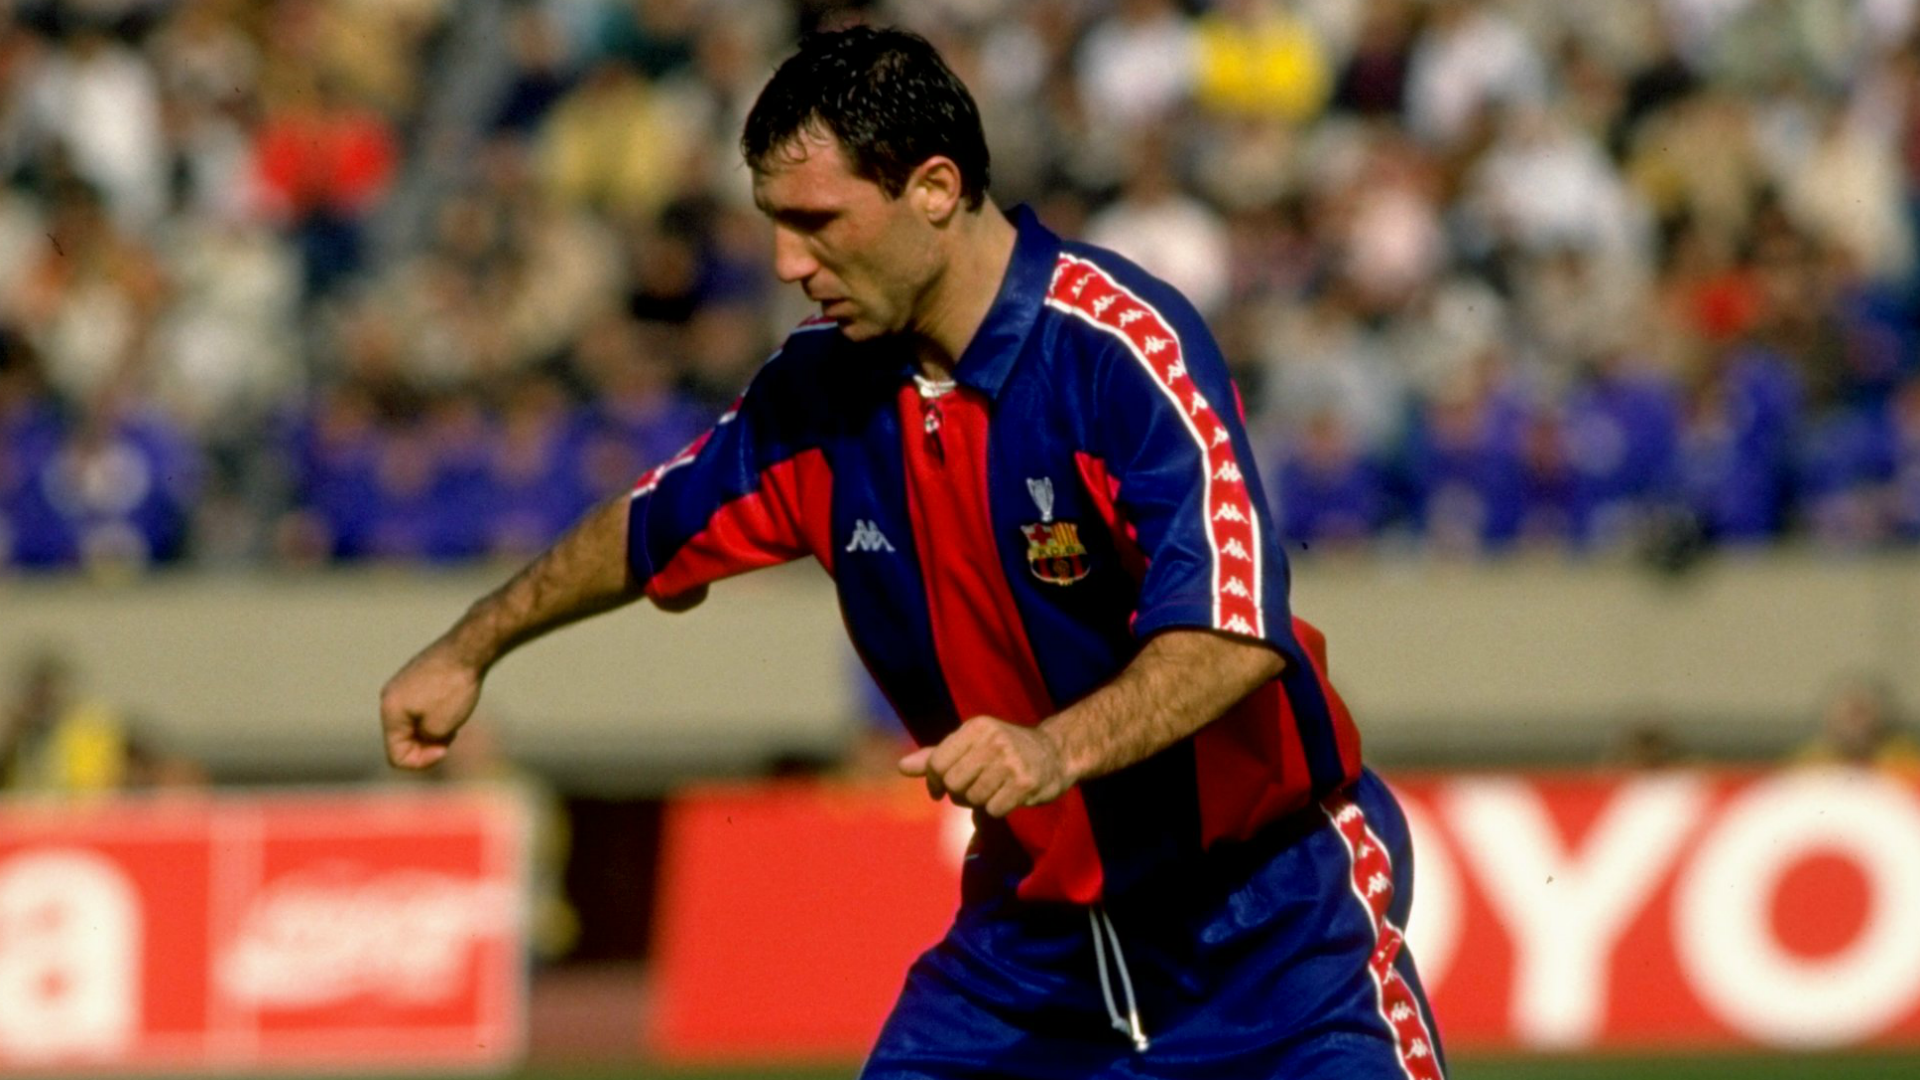 New images for Hristo Stoichkov & Related Suggestions